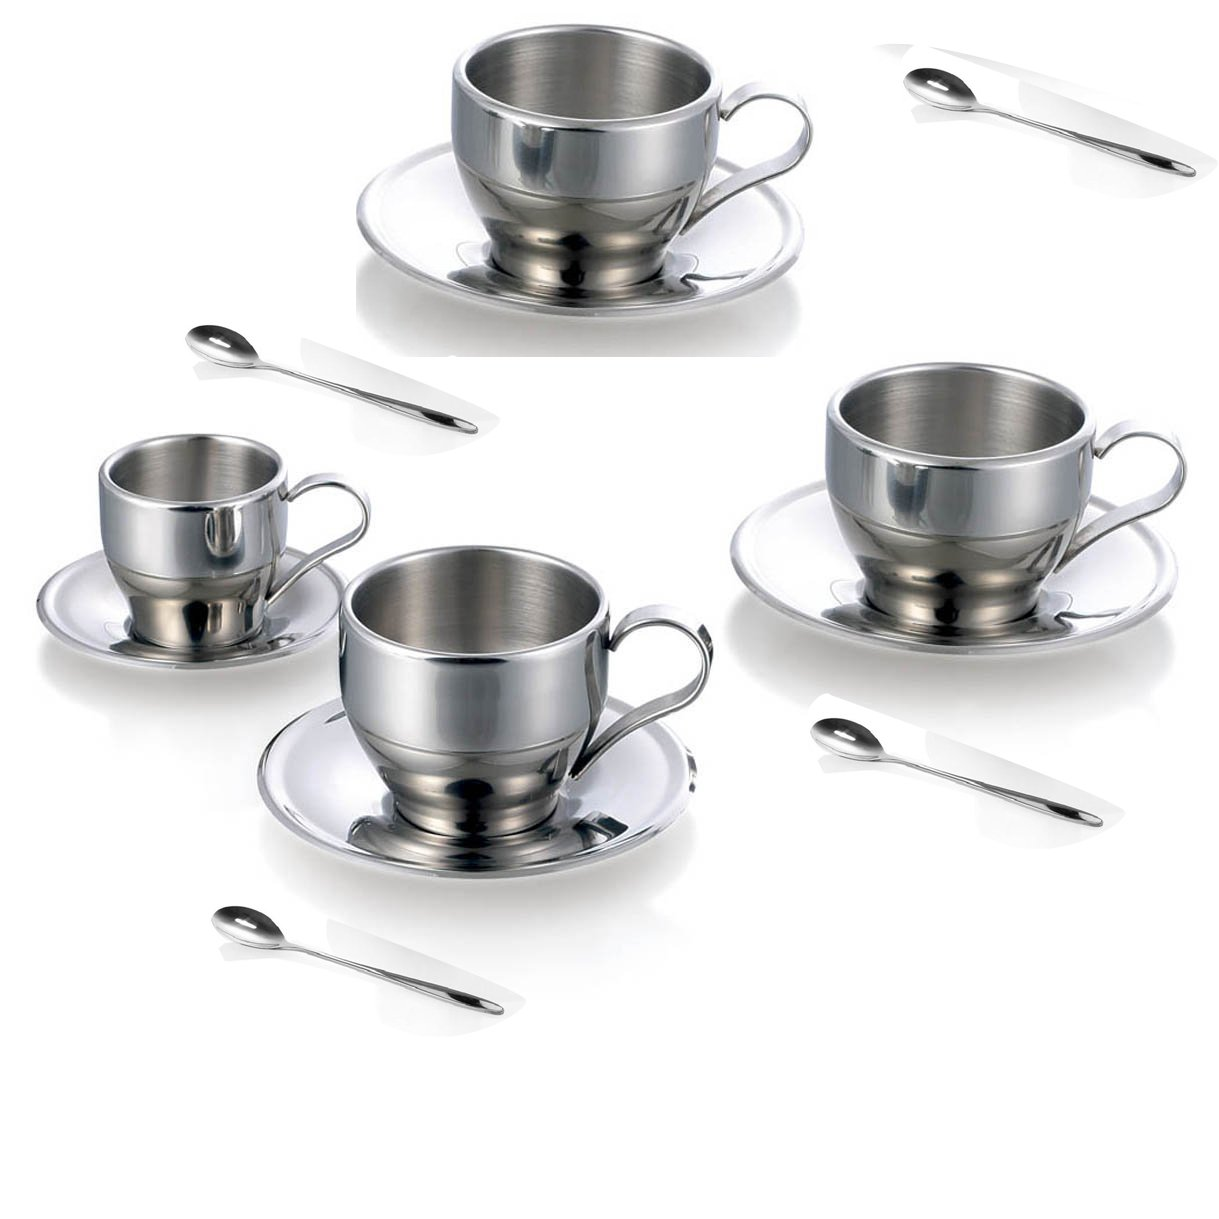 Jasni Stainless Steel Coffee Cup Coffee Mugs Espresso Cups and Great Cappuccino Cups with Spoon and Saucer Gift Idea for Coffee and Tea Lovers (4 packs)